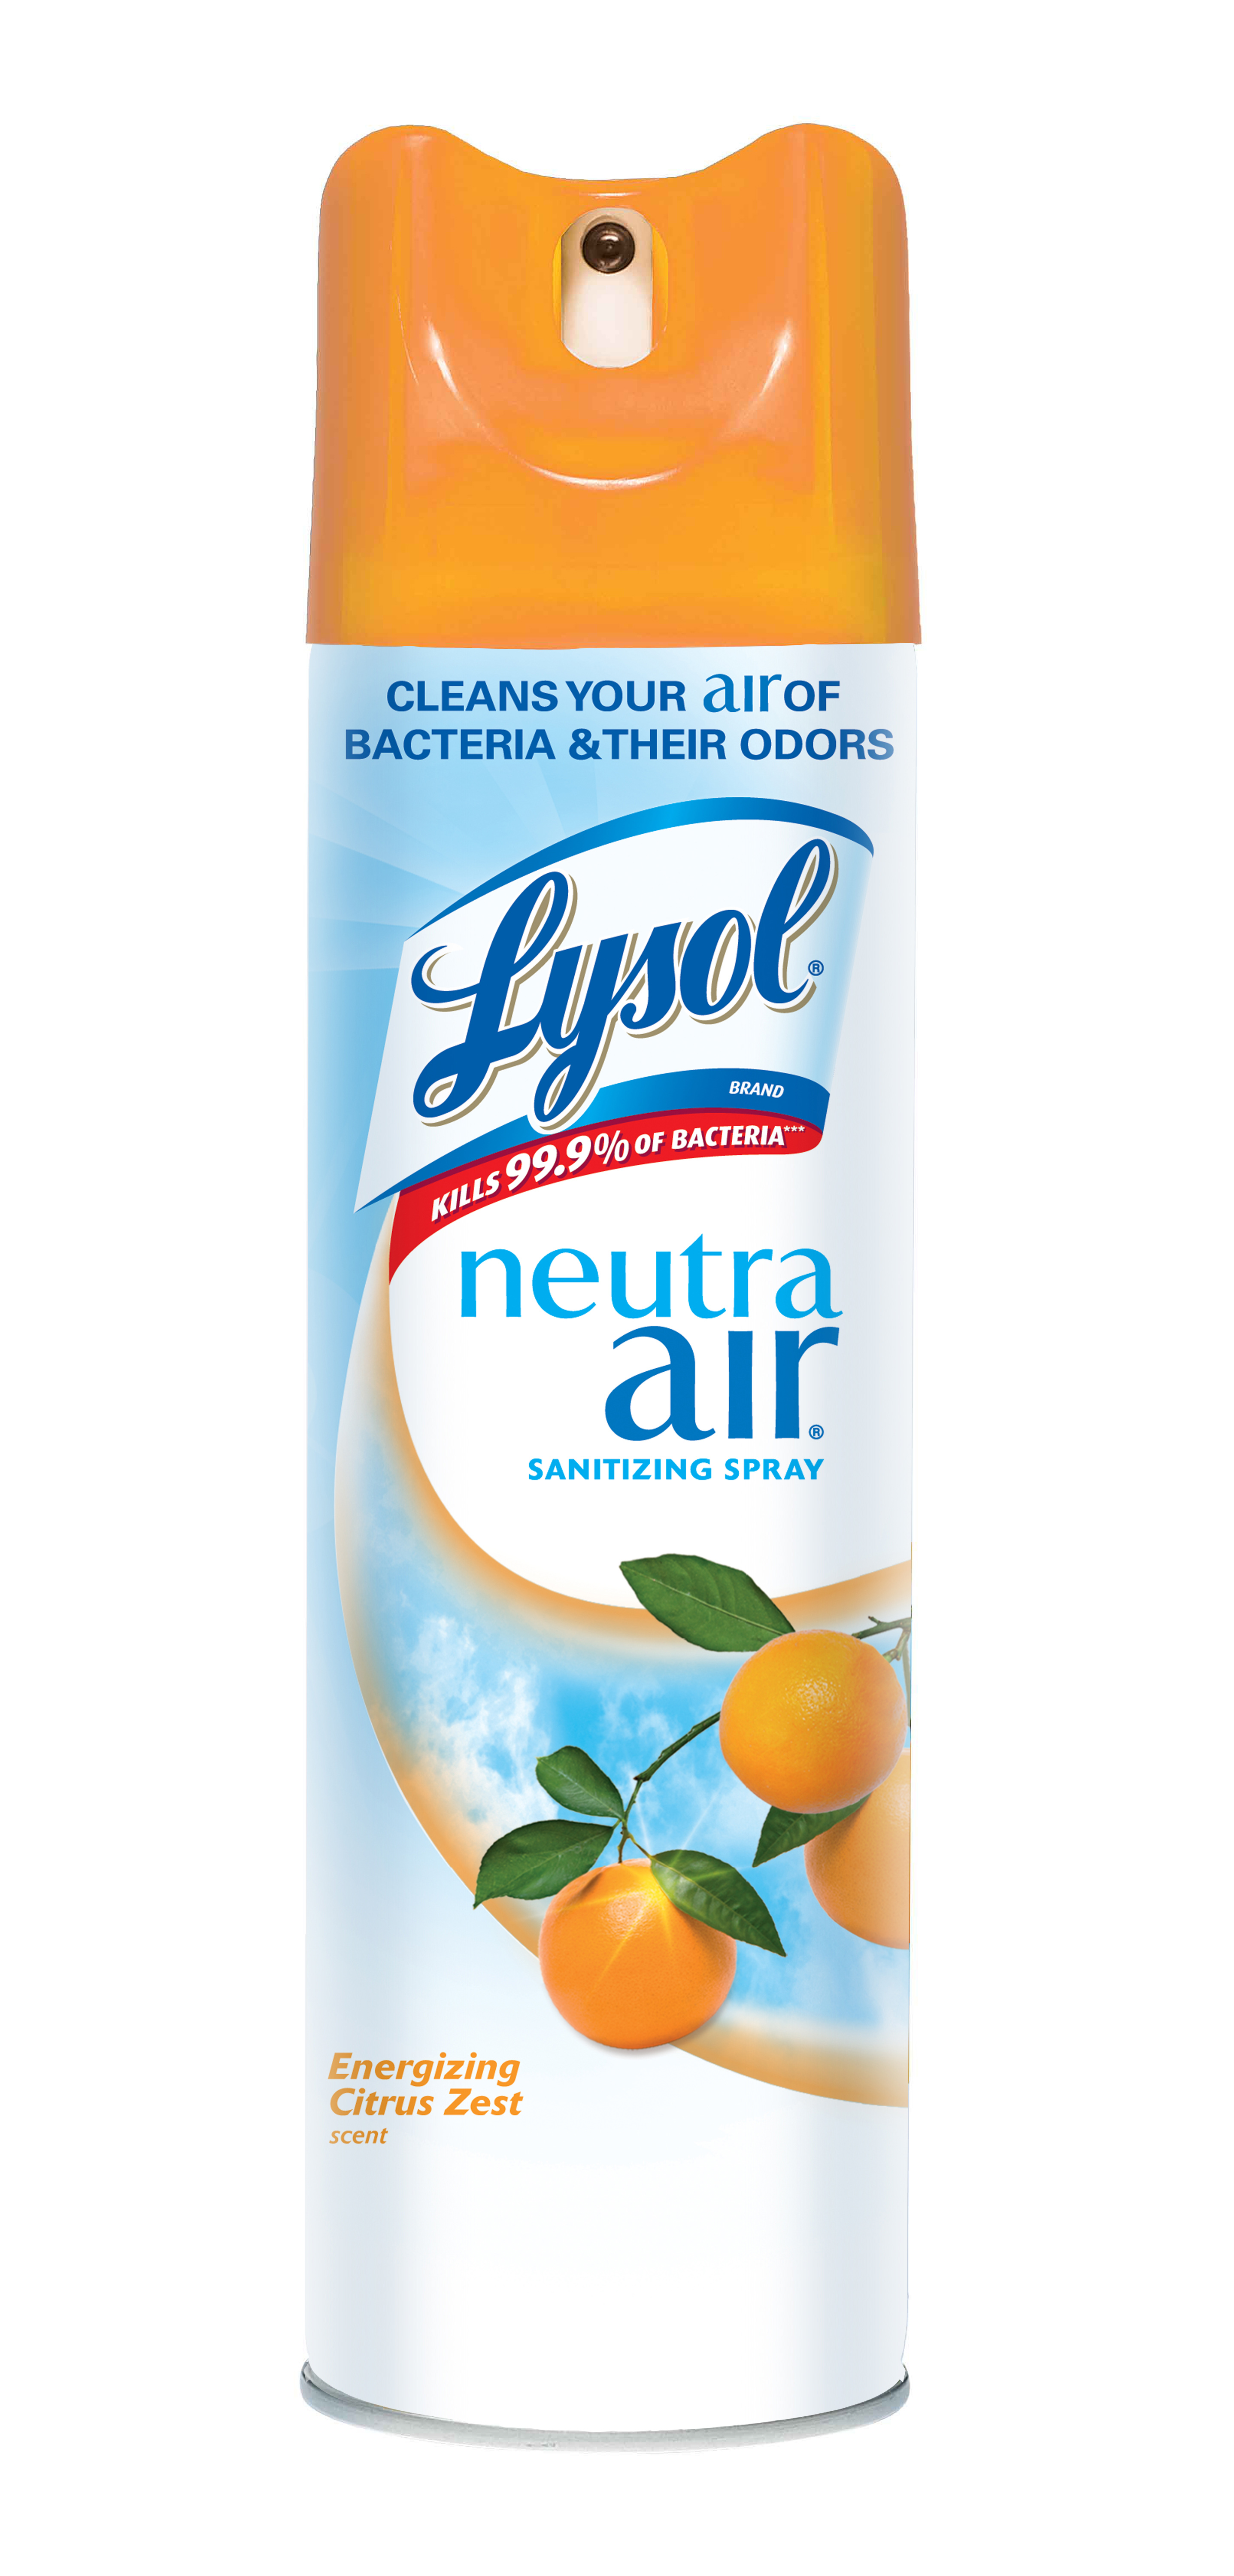 Lysol Neutra Air Sanitizing Spray, Citrus Zest, 10oz, Air Freshener, Odor Neutralizer